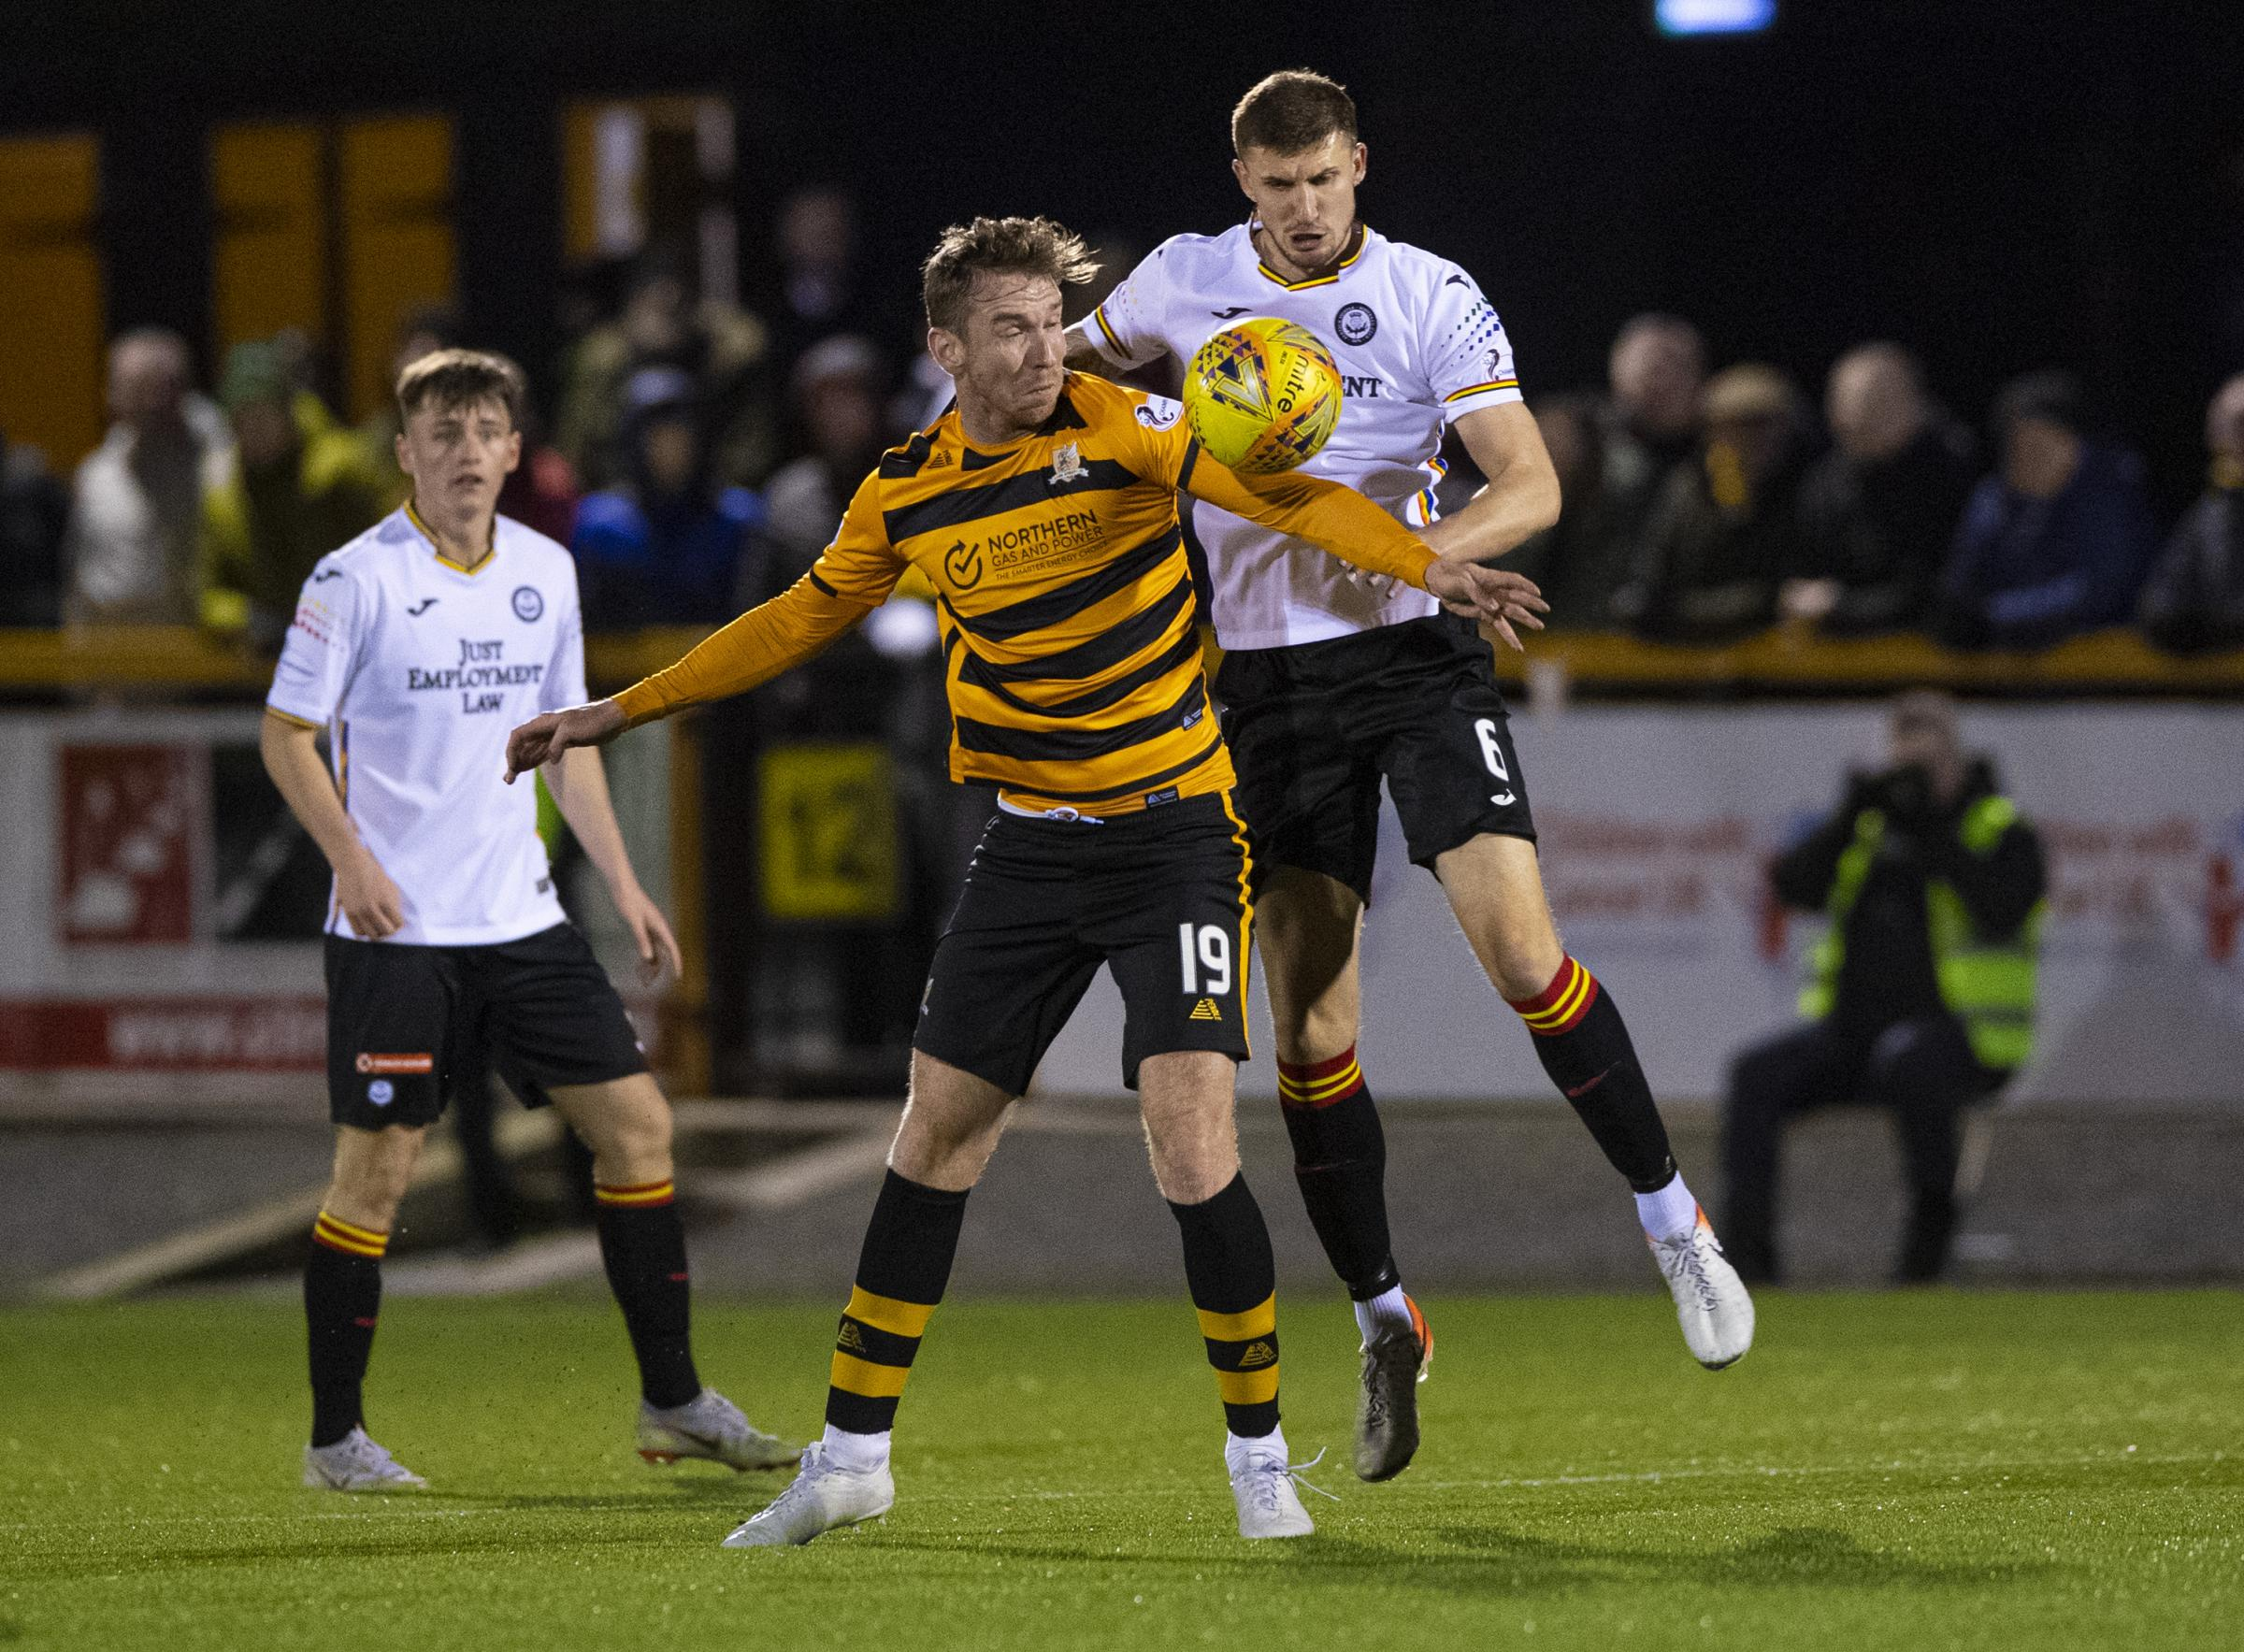 Greenock Morton sign Sean McGinty from Partick Thistle